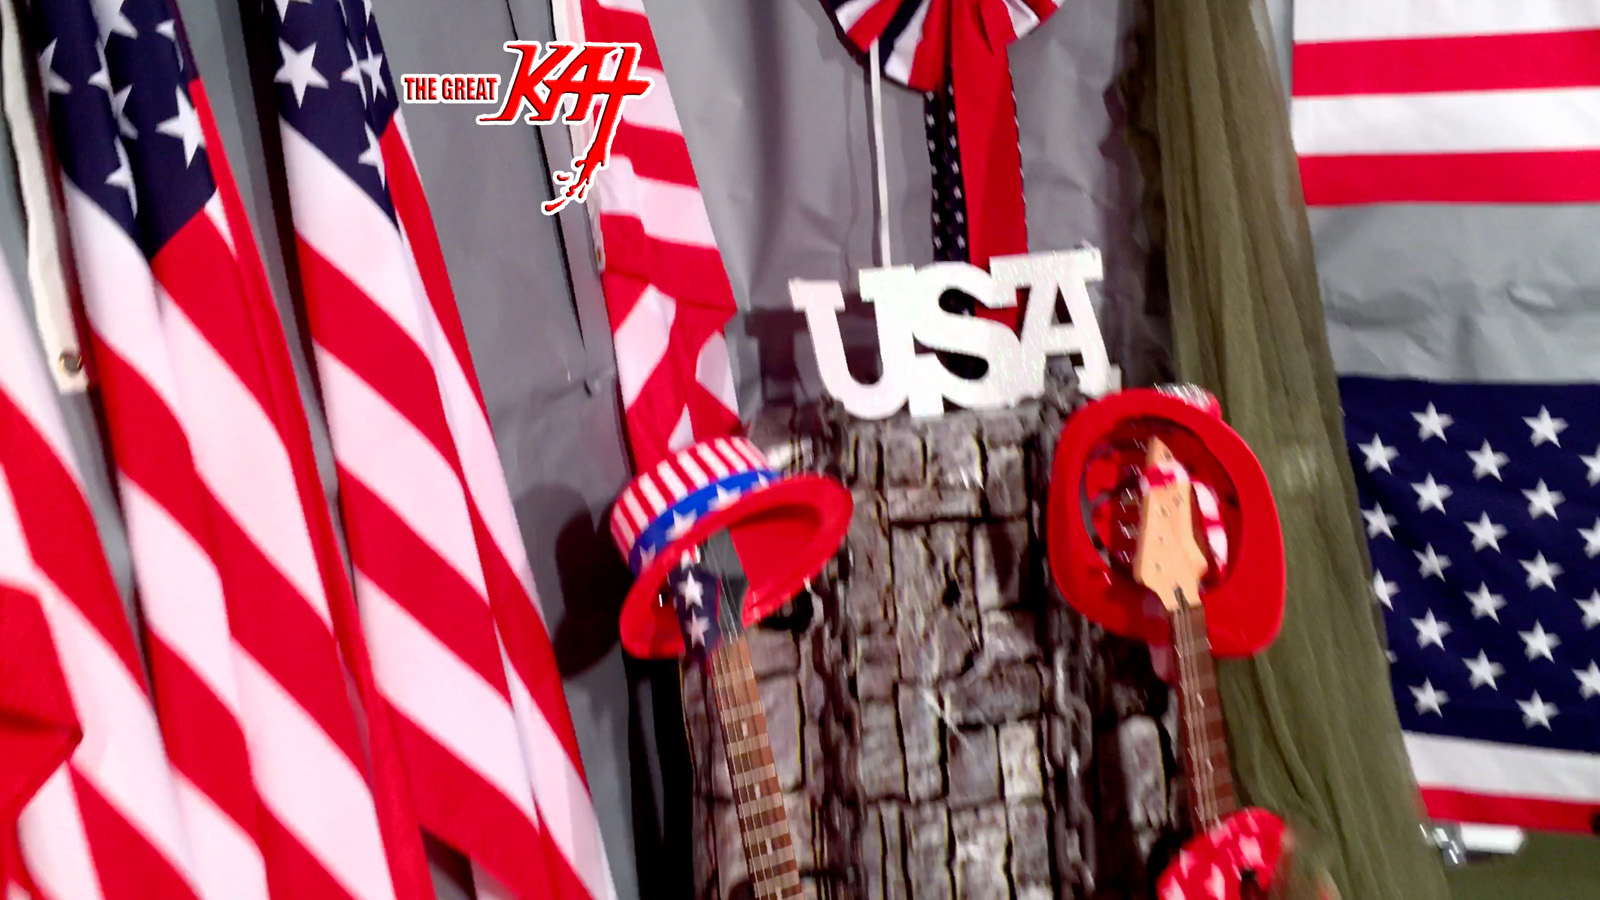 """USA! From The Great Kat's """"TERROR"""" MUSIC VIDEO!"""